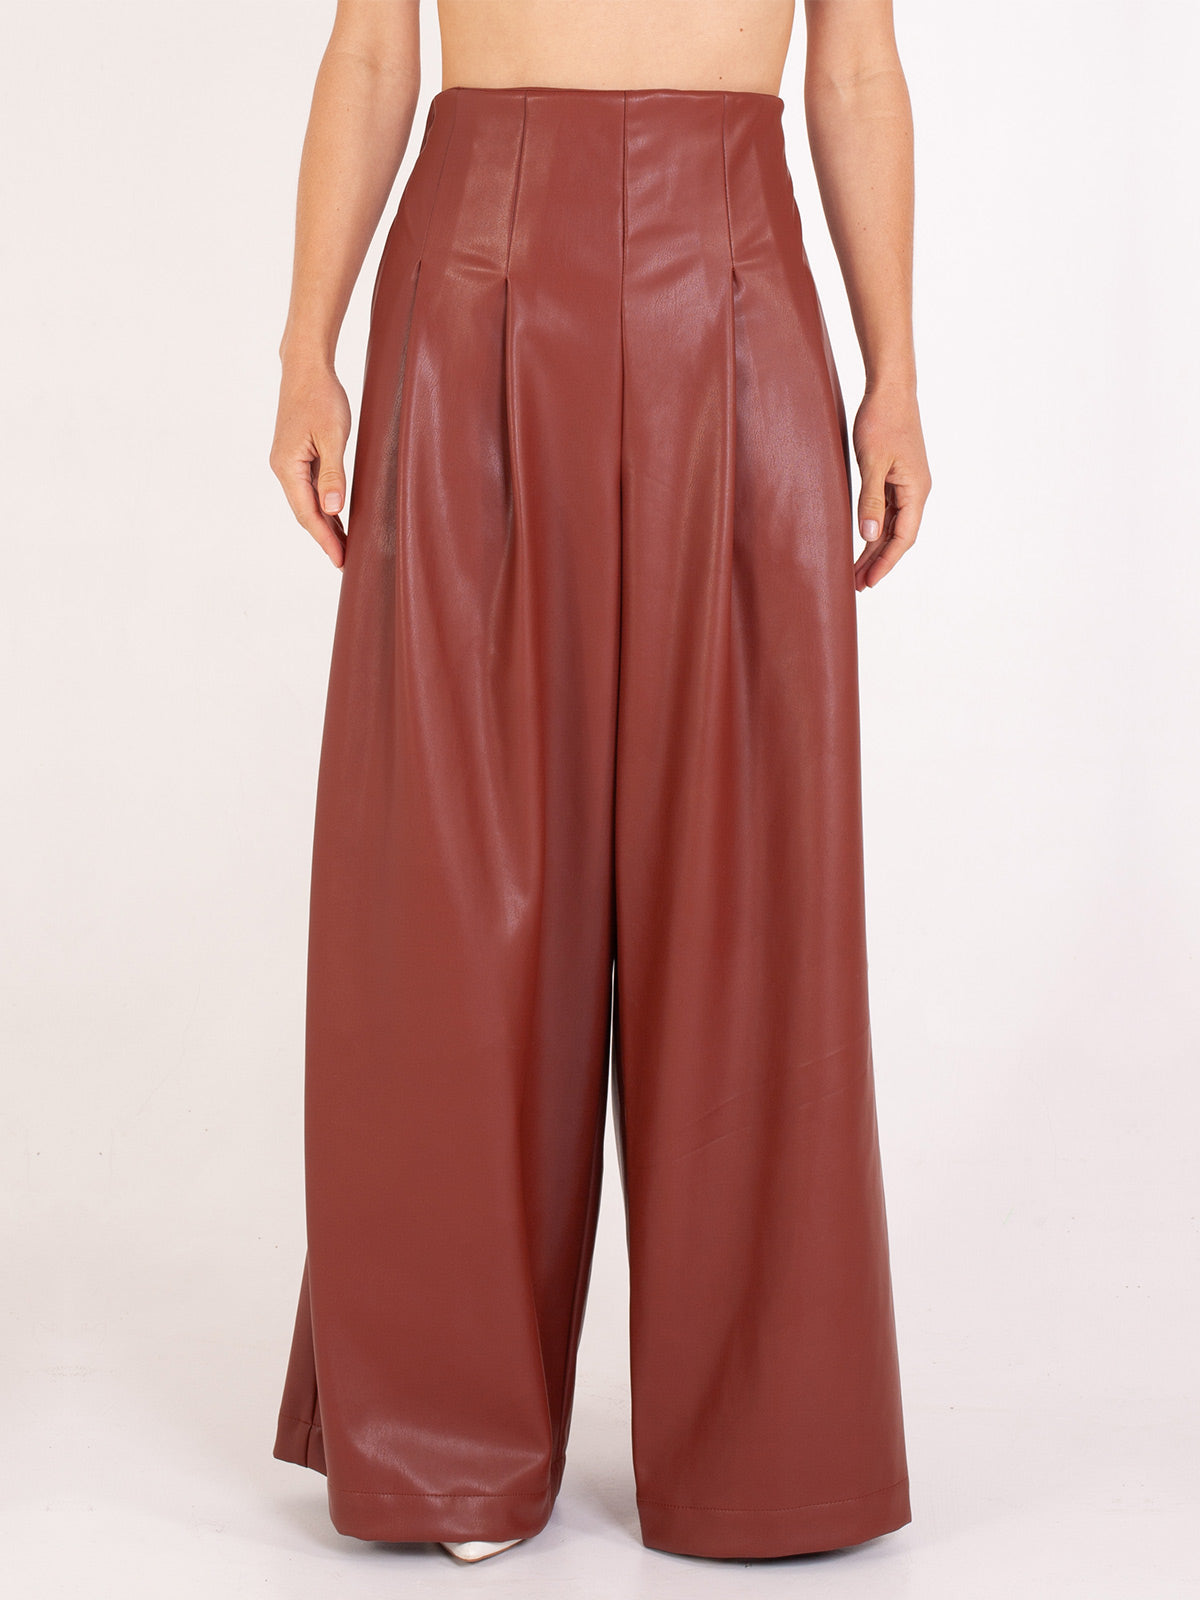 Parker Pants | Caramel Vegan Leather